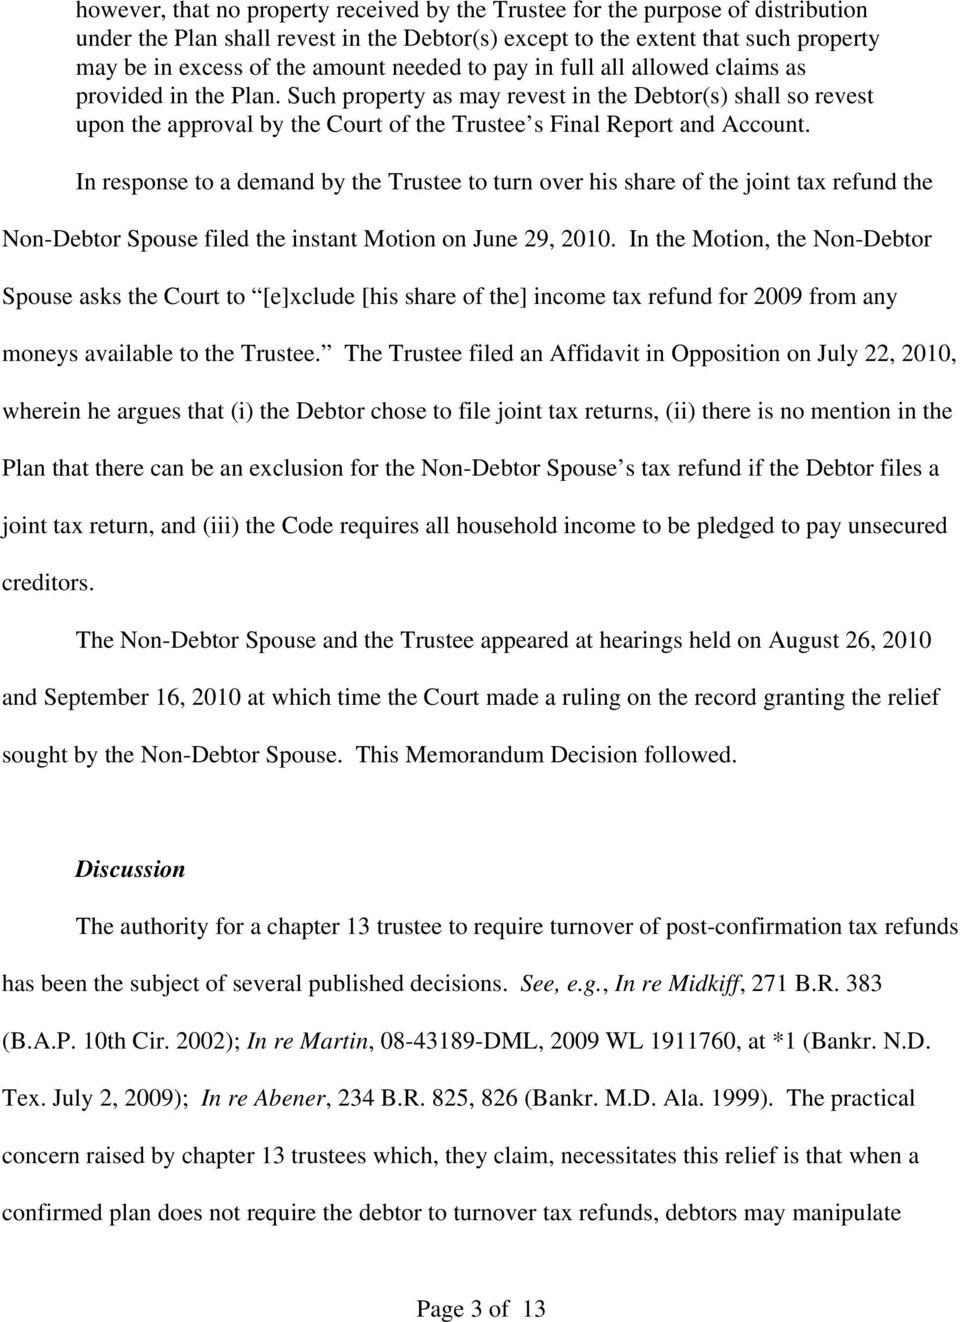 In response to a demand by the Trustee to turn over his share of the joint tax refund the Non-Debtor Spouse filed the instant Motion on June 29, 2010.